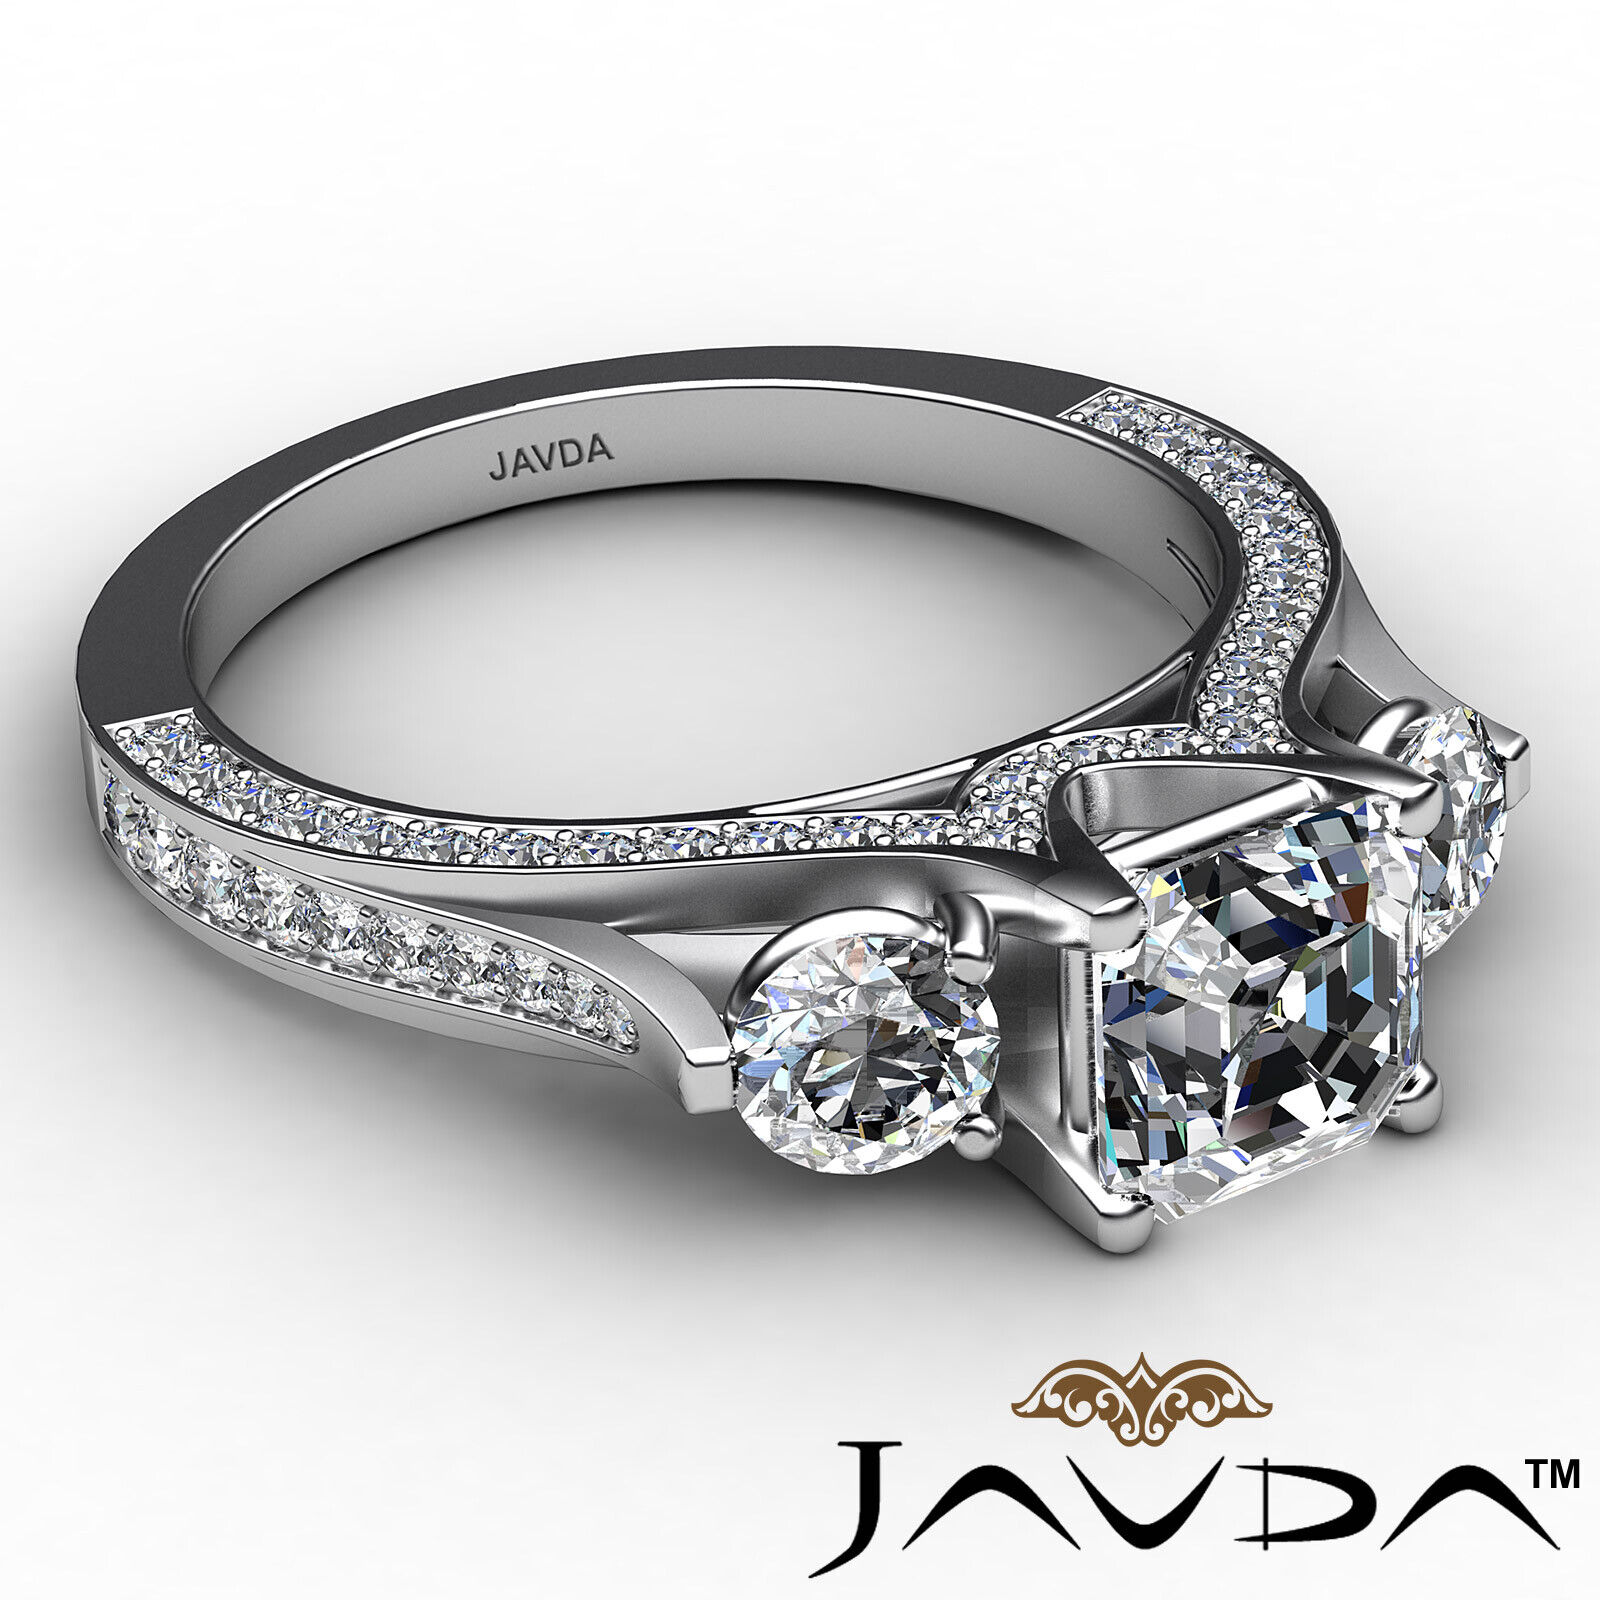 Asscher Diamond Engagement Pave Set 3stone Ring GIA G Color & SI2 clarity 2.1ctw 6